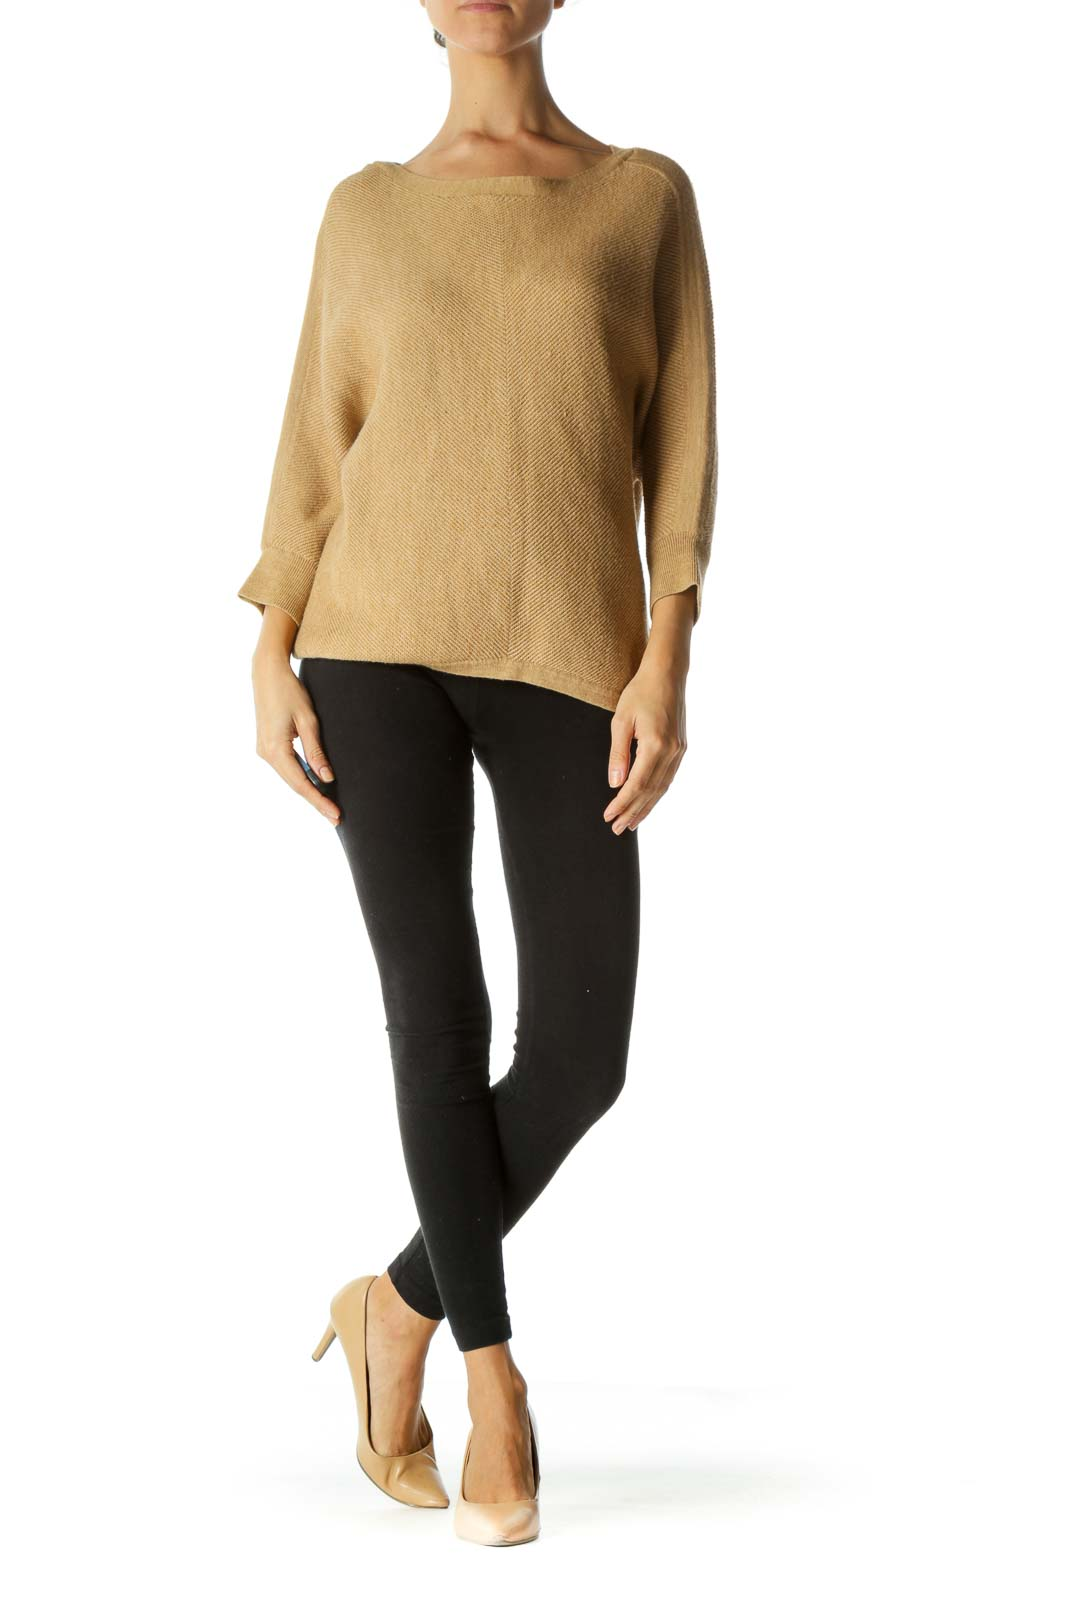 Tan Beige Soft-Touch Boat Neck Bat Sleeve Knit Sweater